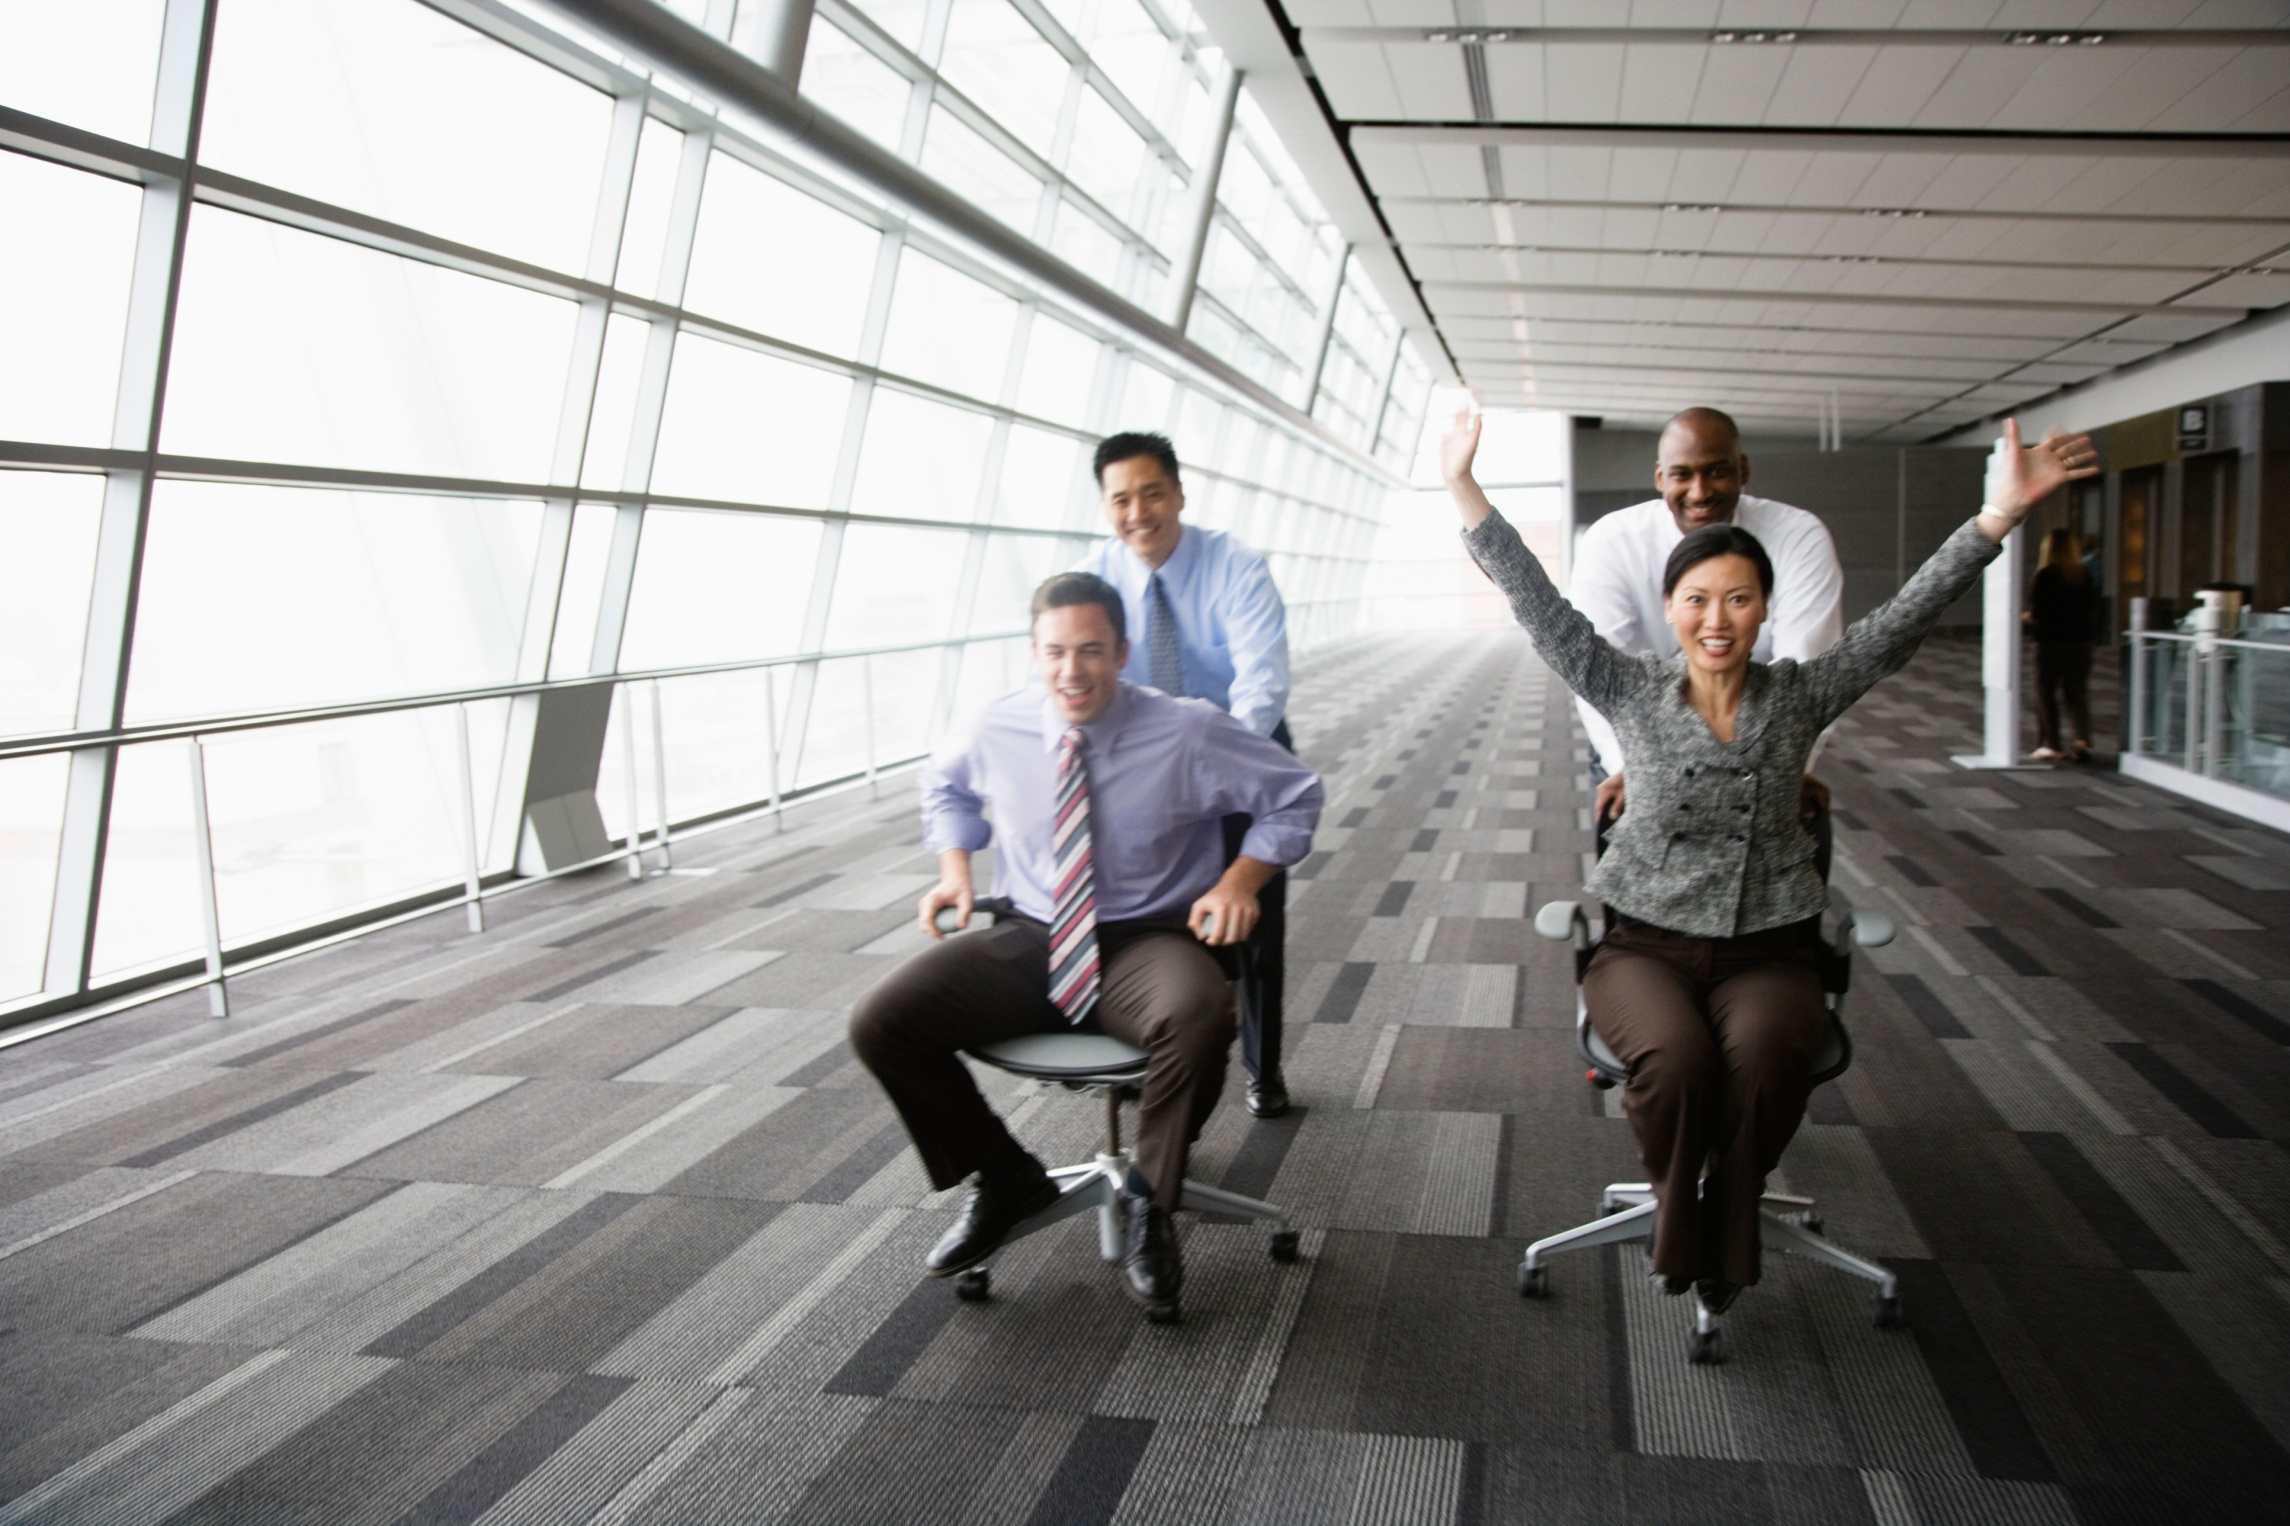 To get more out of your managment training program, start by making it more fun.